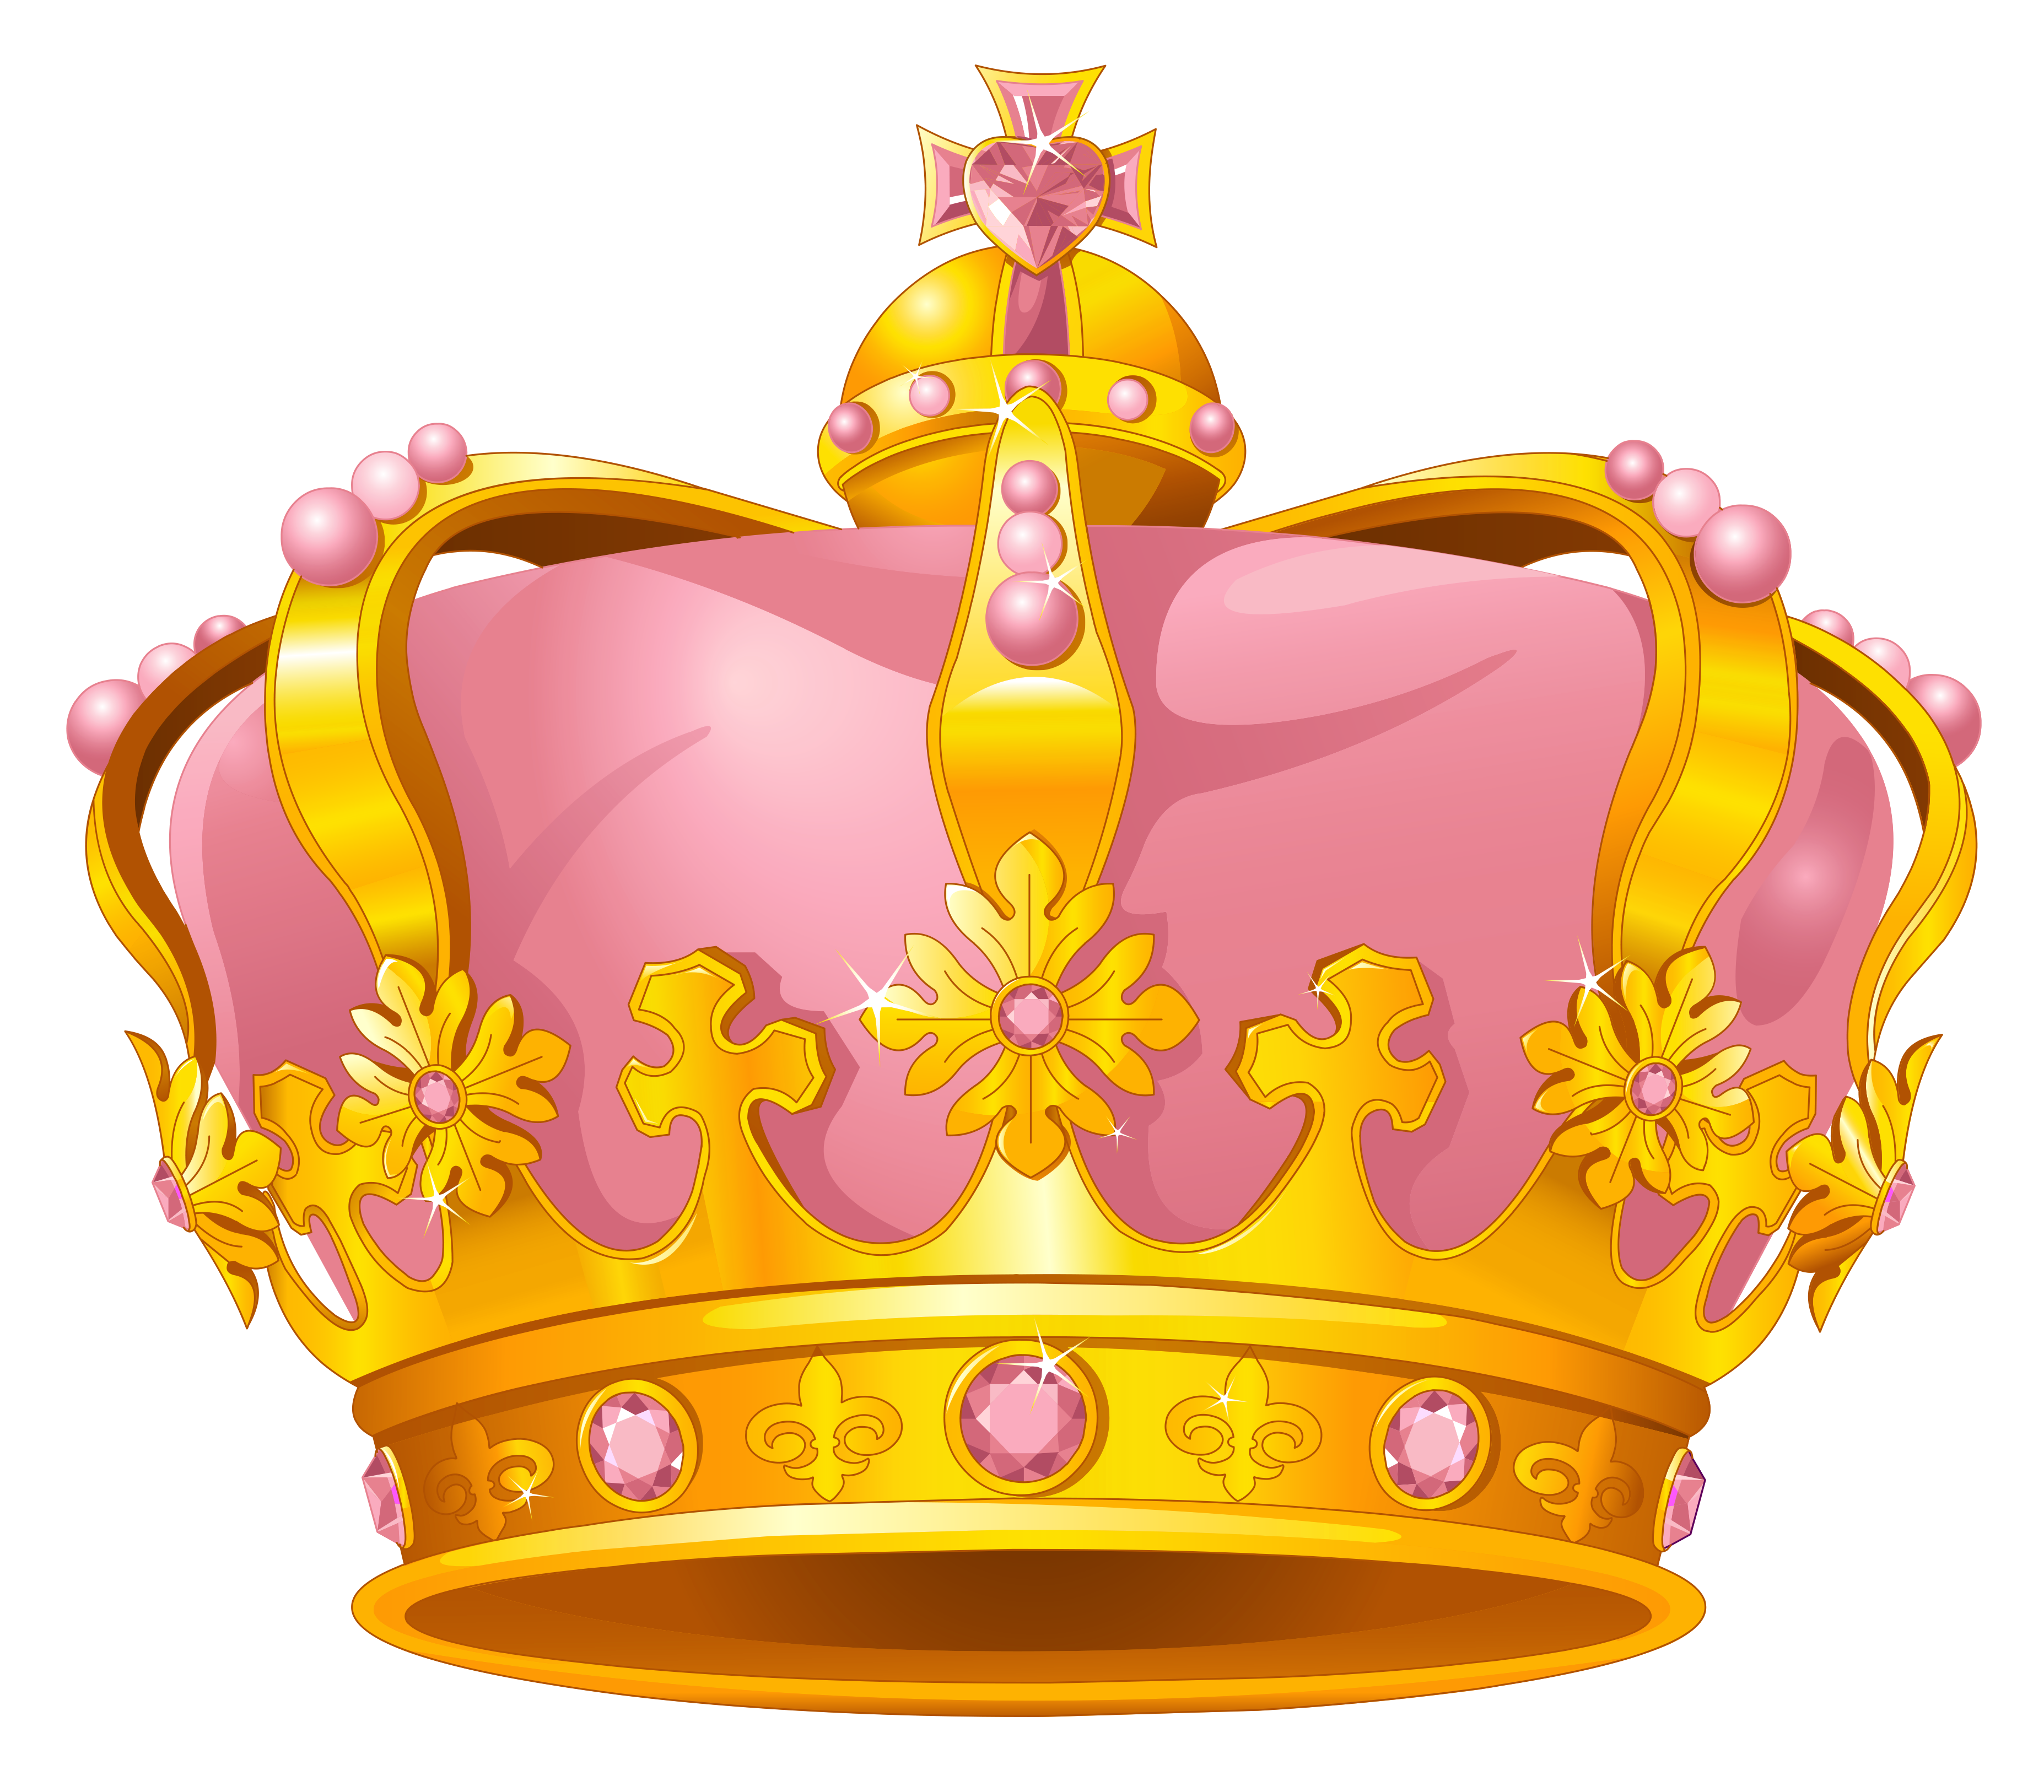 Pink and gold crown clipart